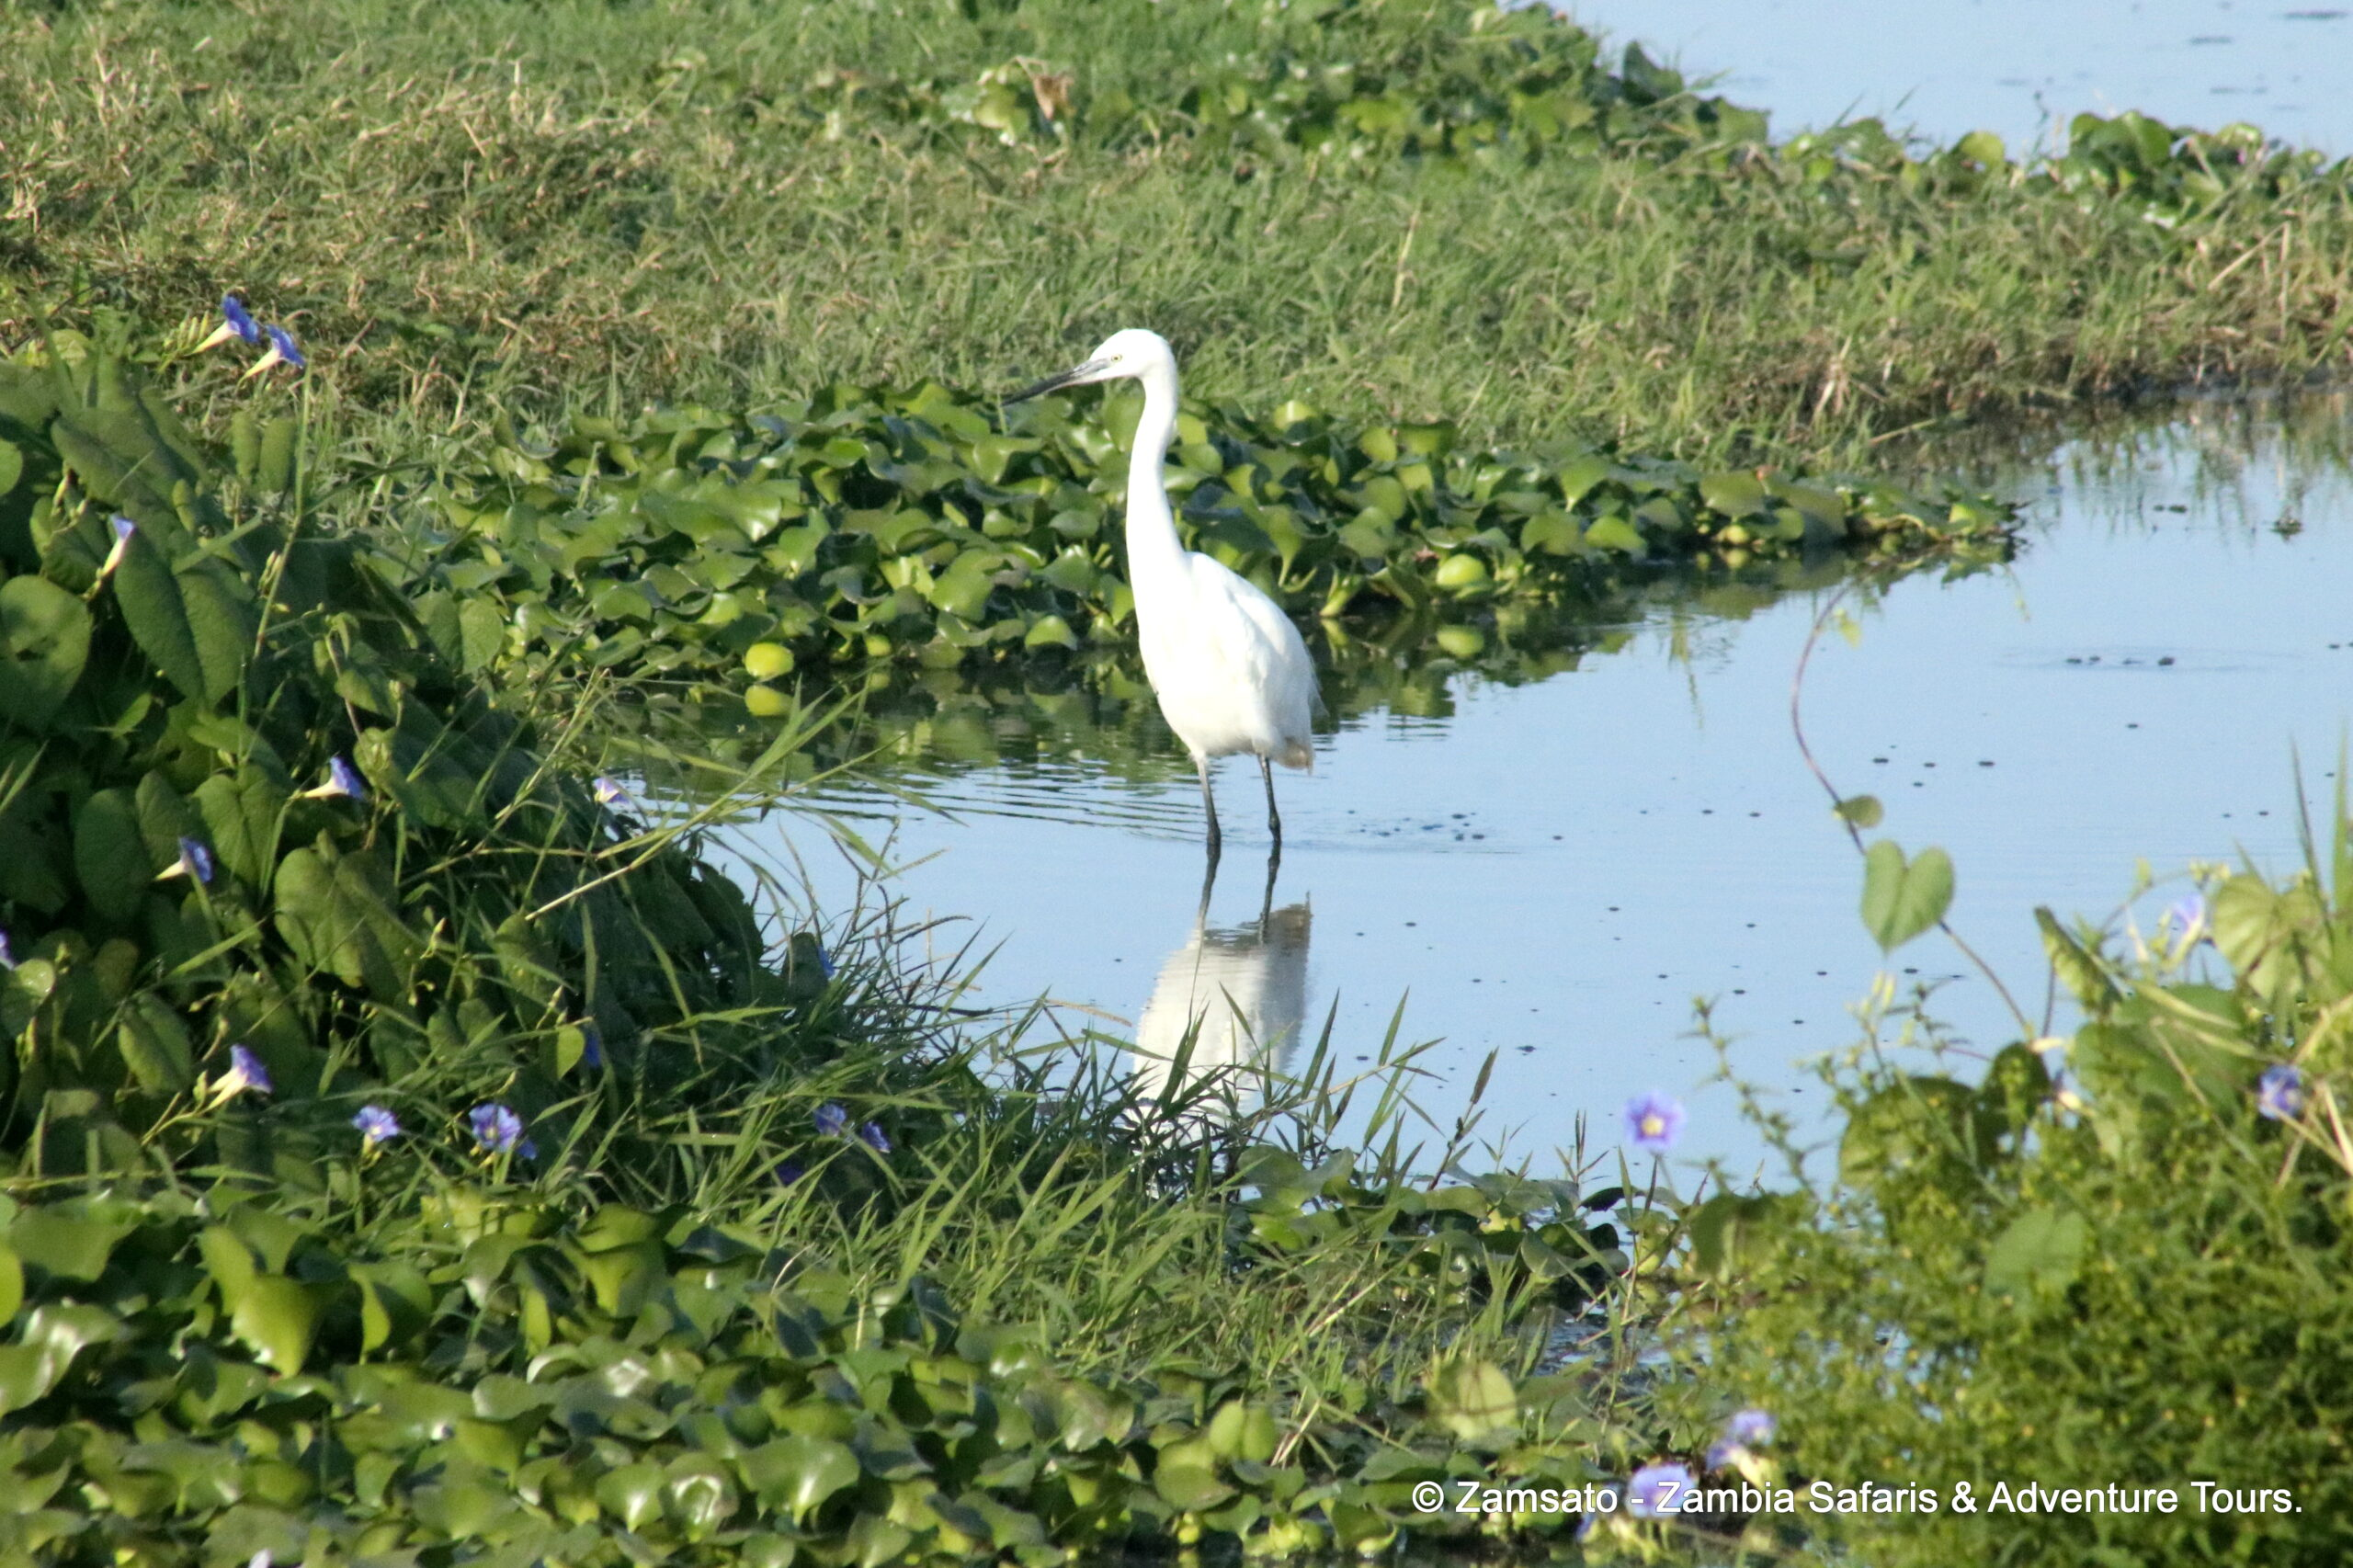 Birding by the ponds in Livingstone: Little Egret